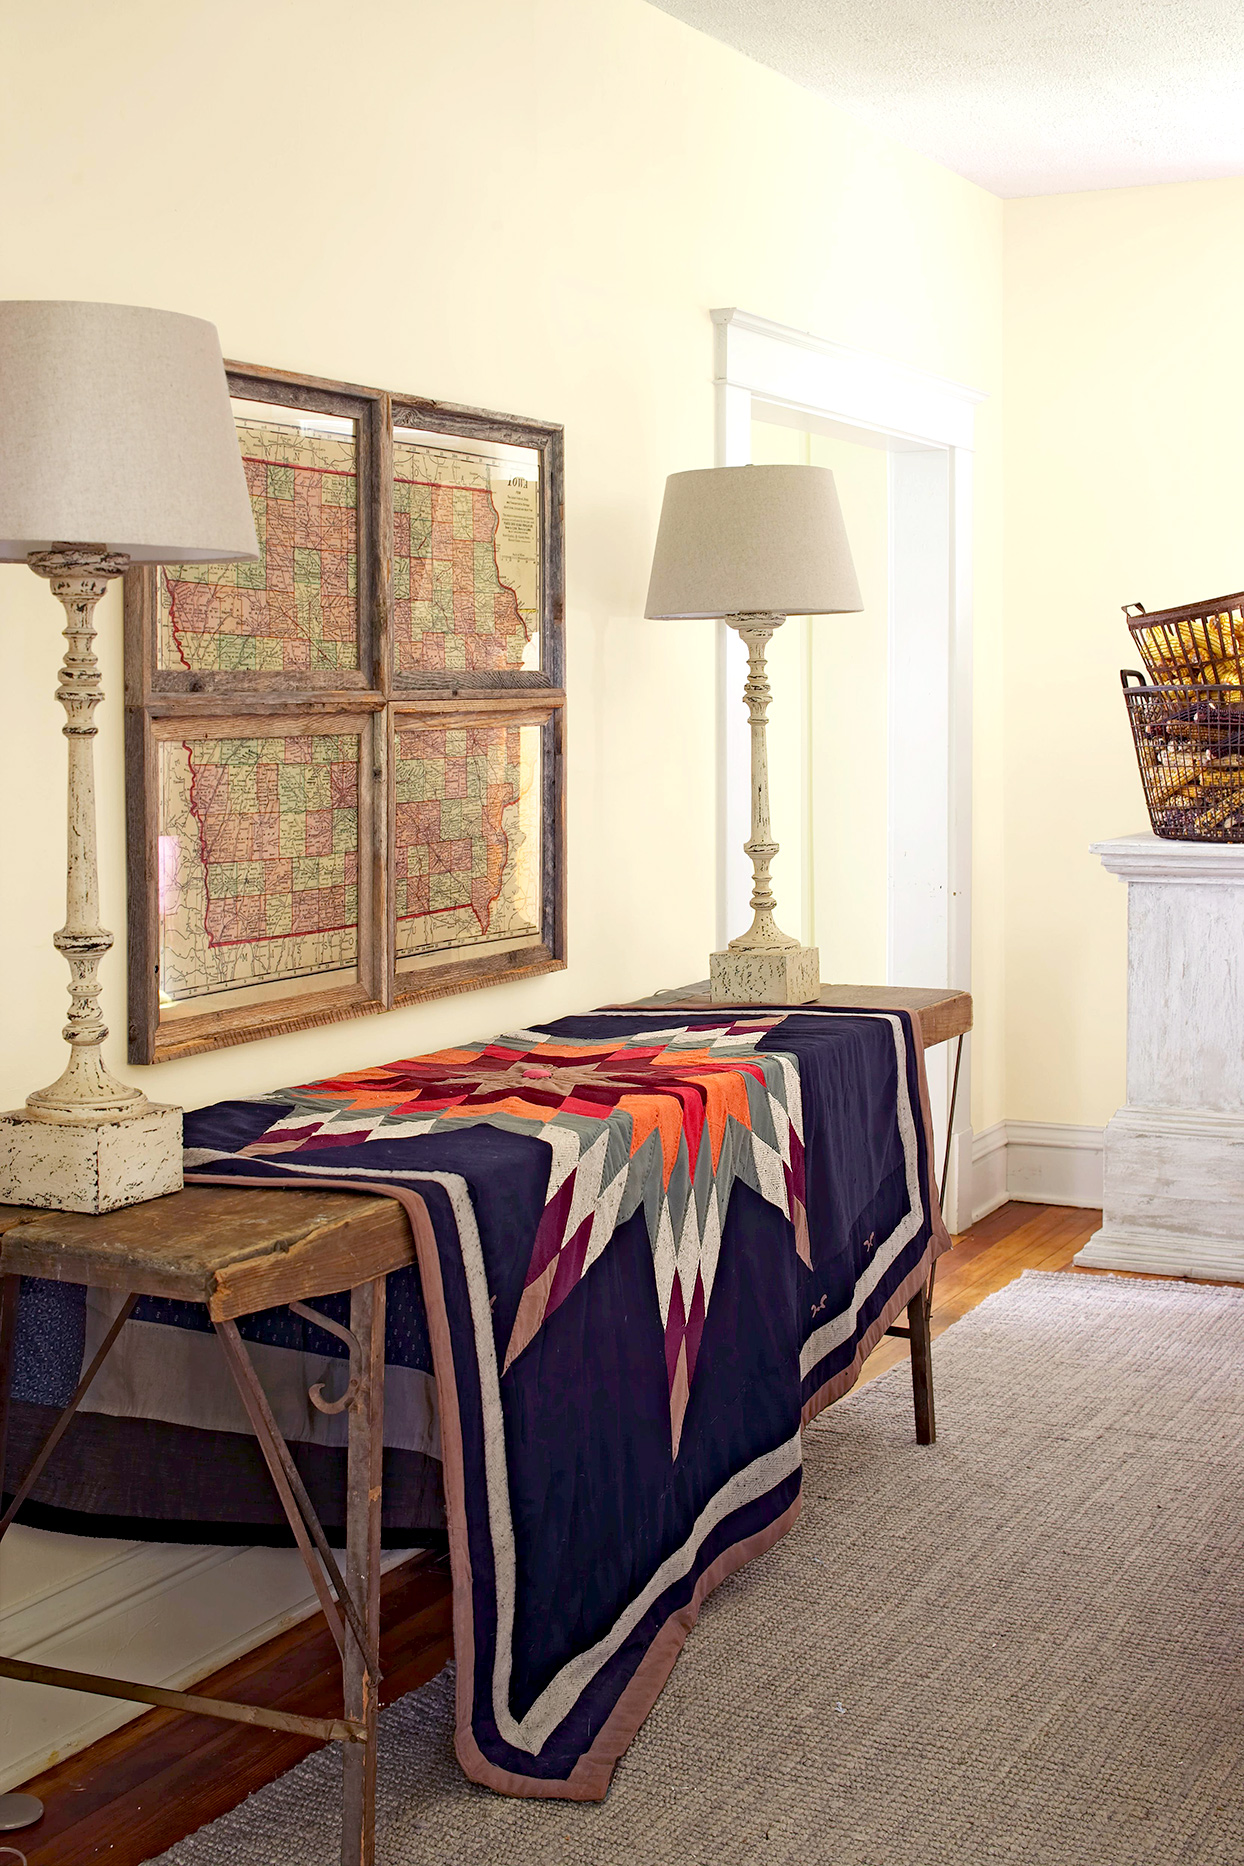 Wooden table with quilt and map artwork